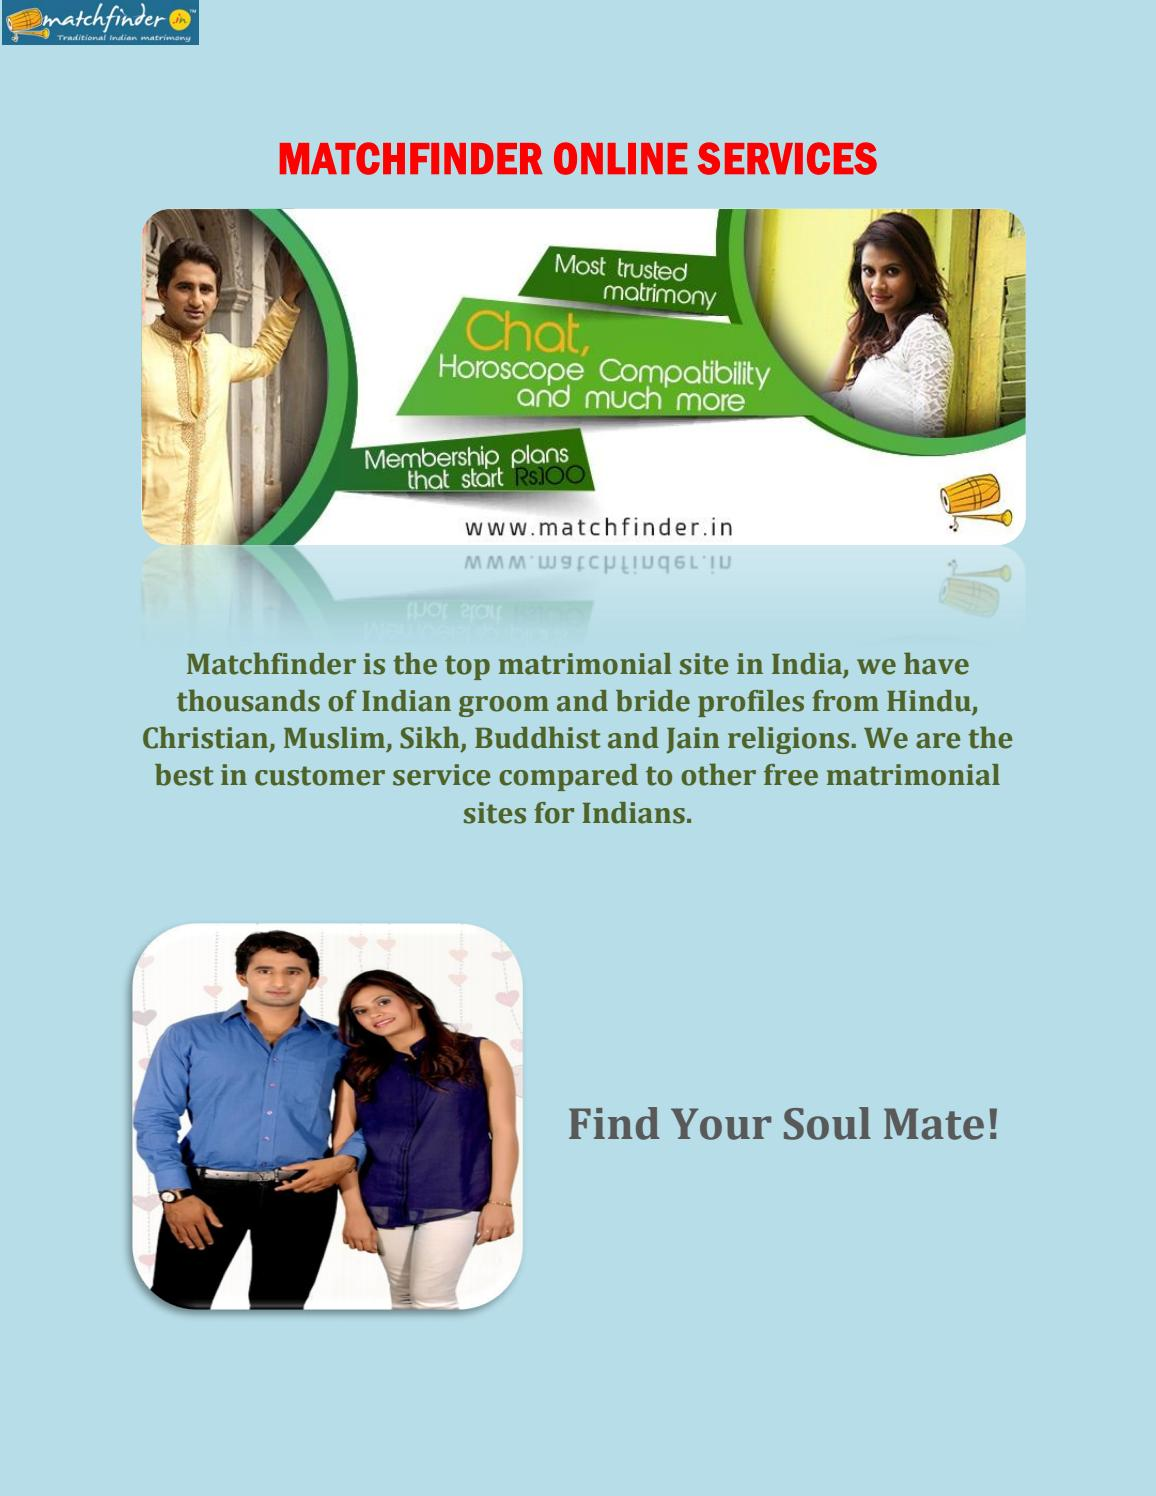 Kamma Divorced Brides By Matchfinder Online Services Pvt Ltd Issuu